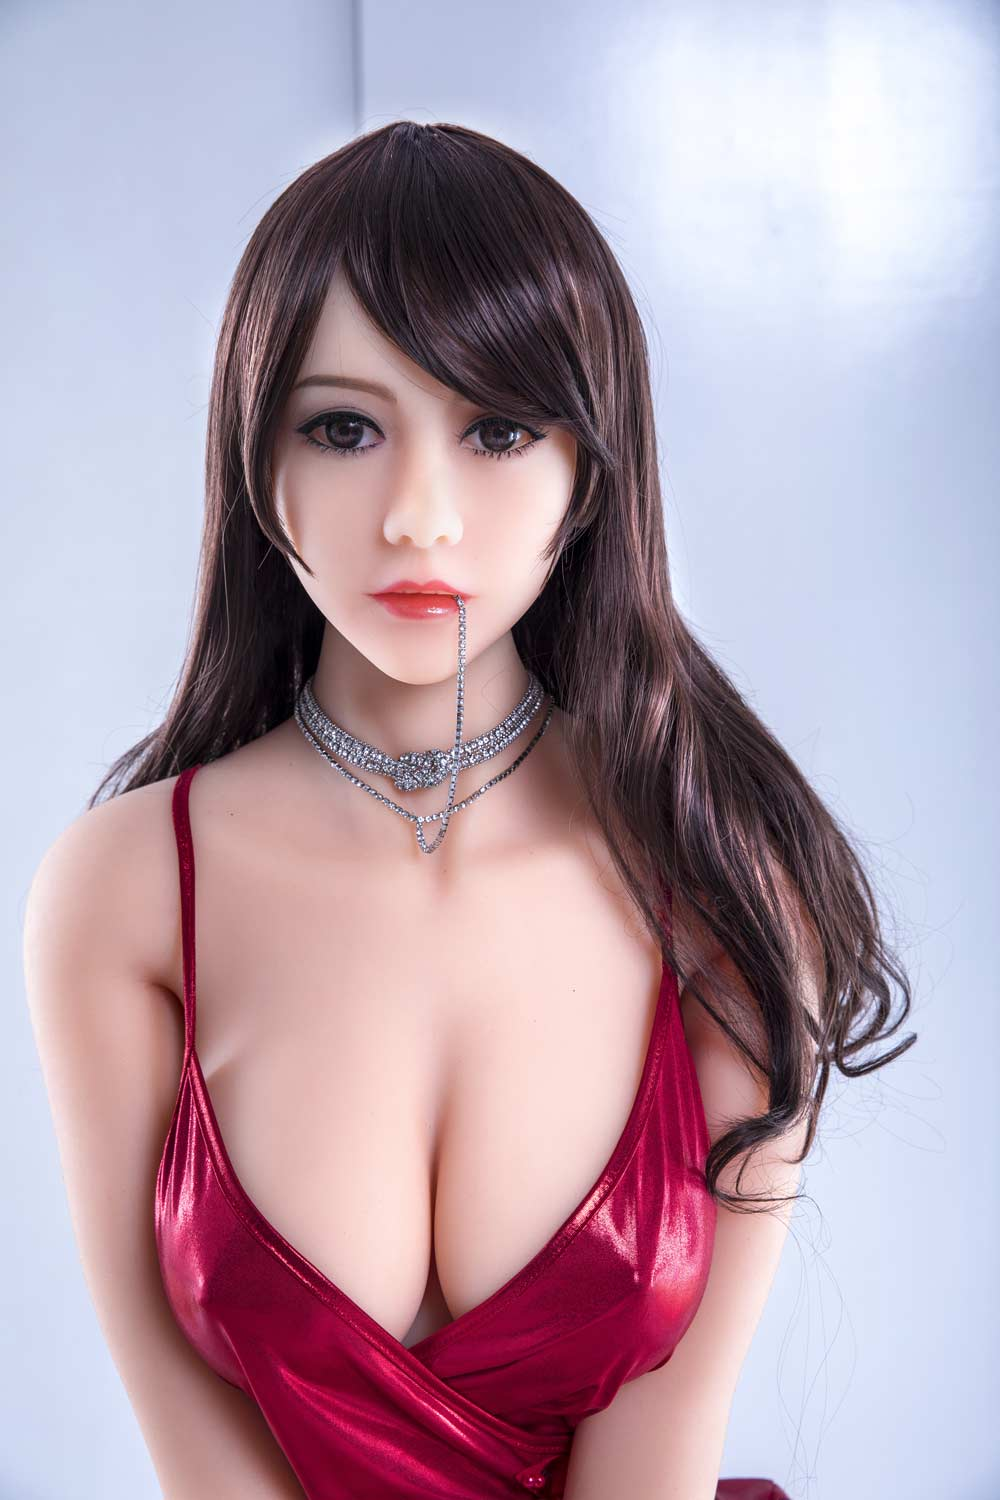 Sex doll with a necklace